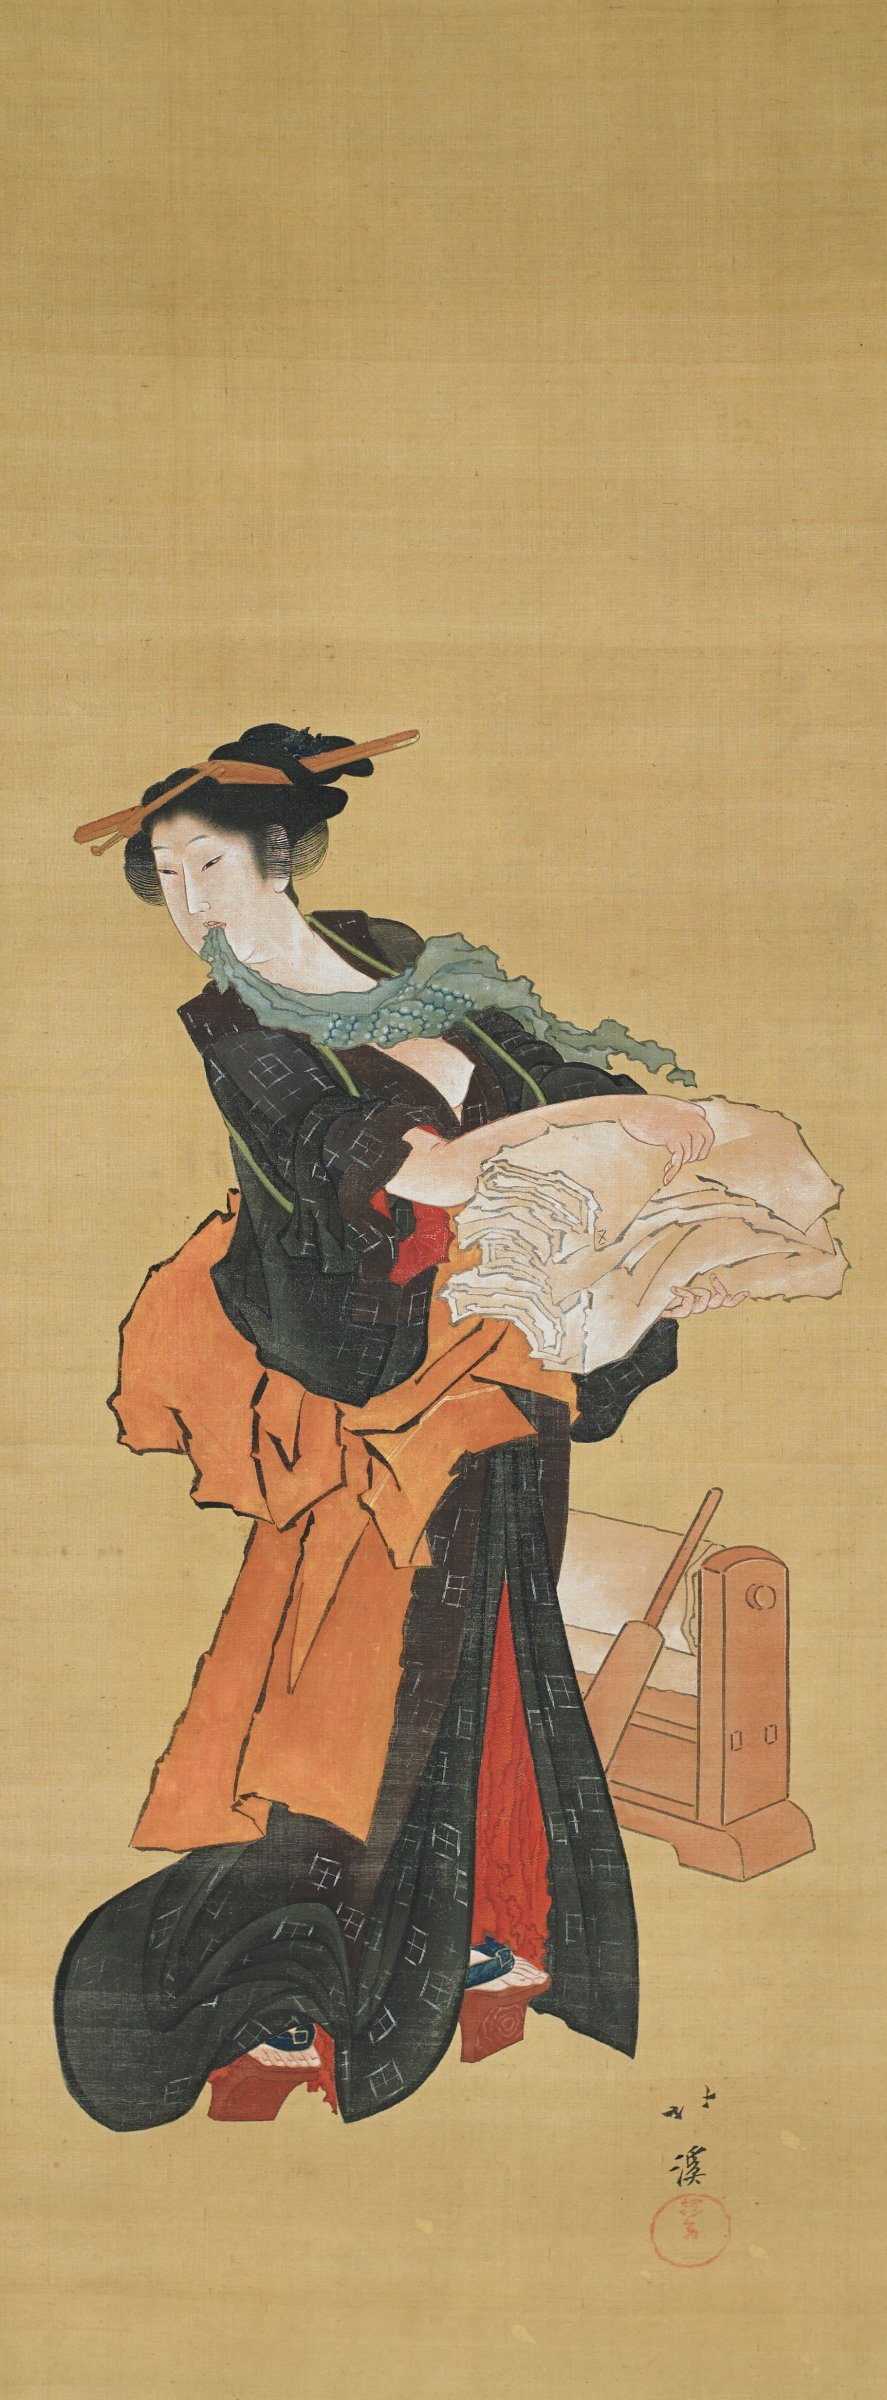 Painting of a young woman in a black summer kimono with one breast exposed, holding a bolt of white cloth. She stands in front of a beater and roller for fulling cloth. Brick and olive brocade mounting with ivory roller ends